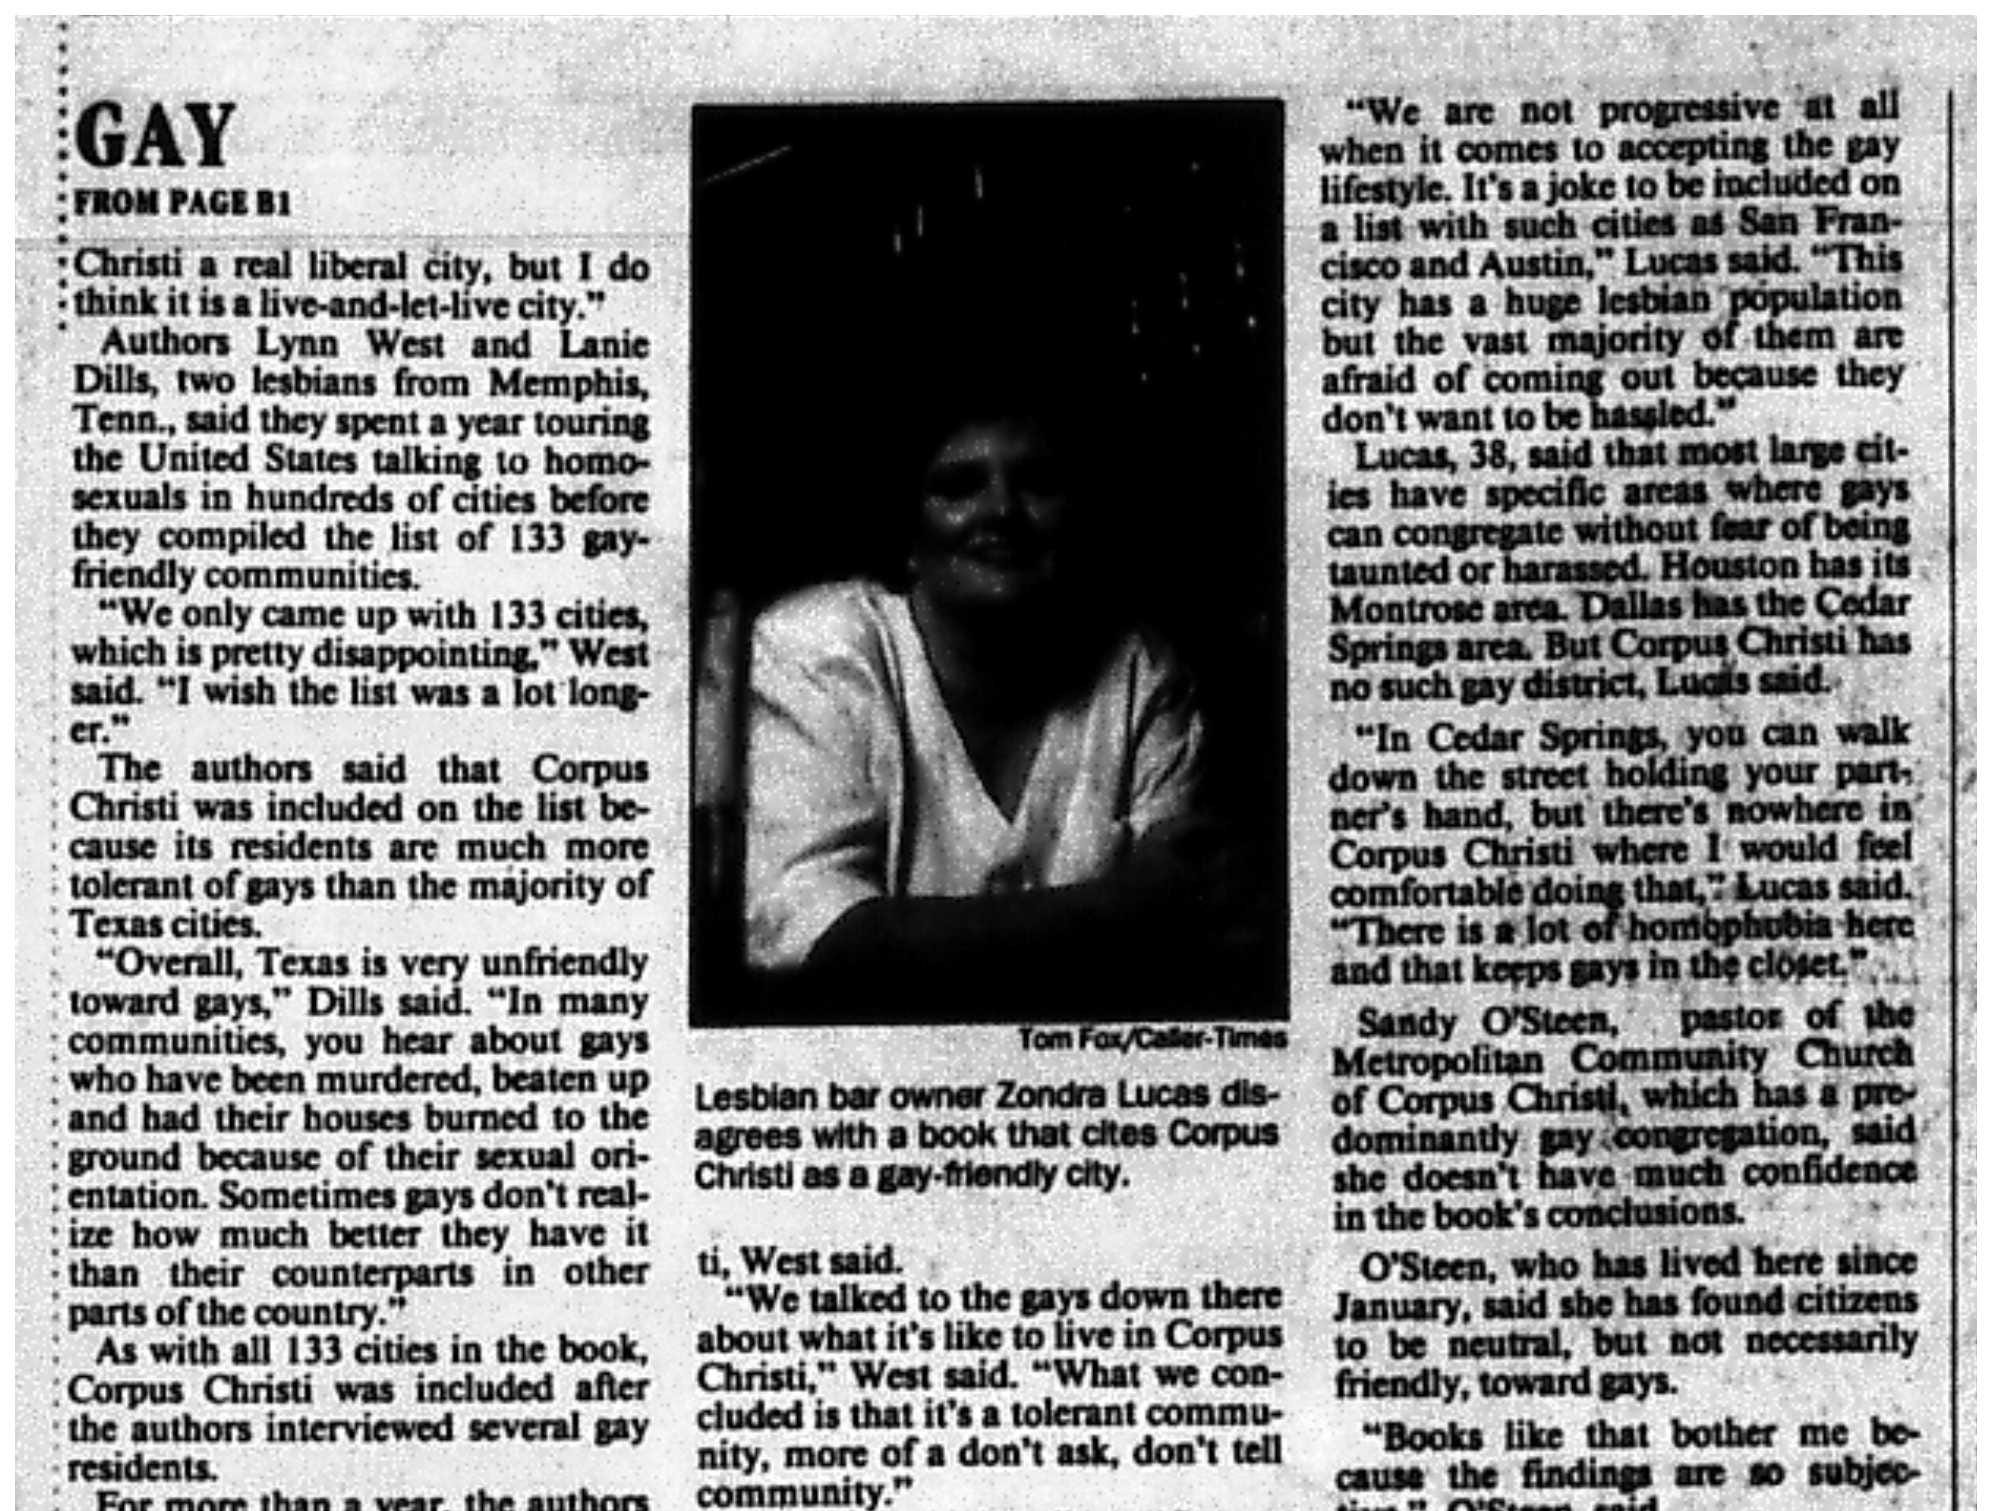 An article from the November 3, 1995 Caller-Times with local gay people disputing Corpus Christi being ranked as a gay-friendly city. (2 of 2)